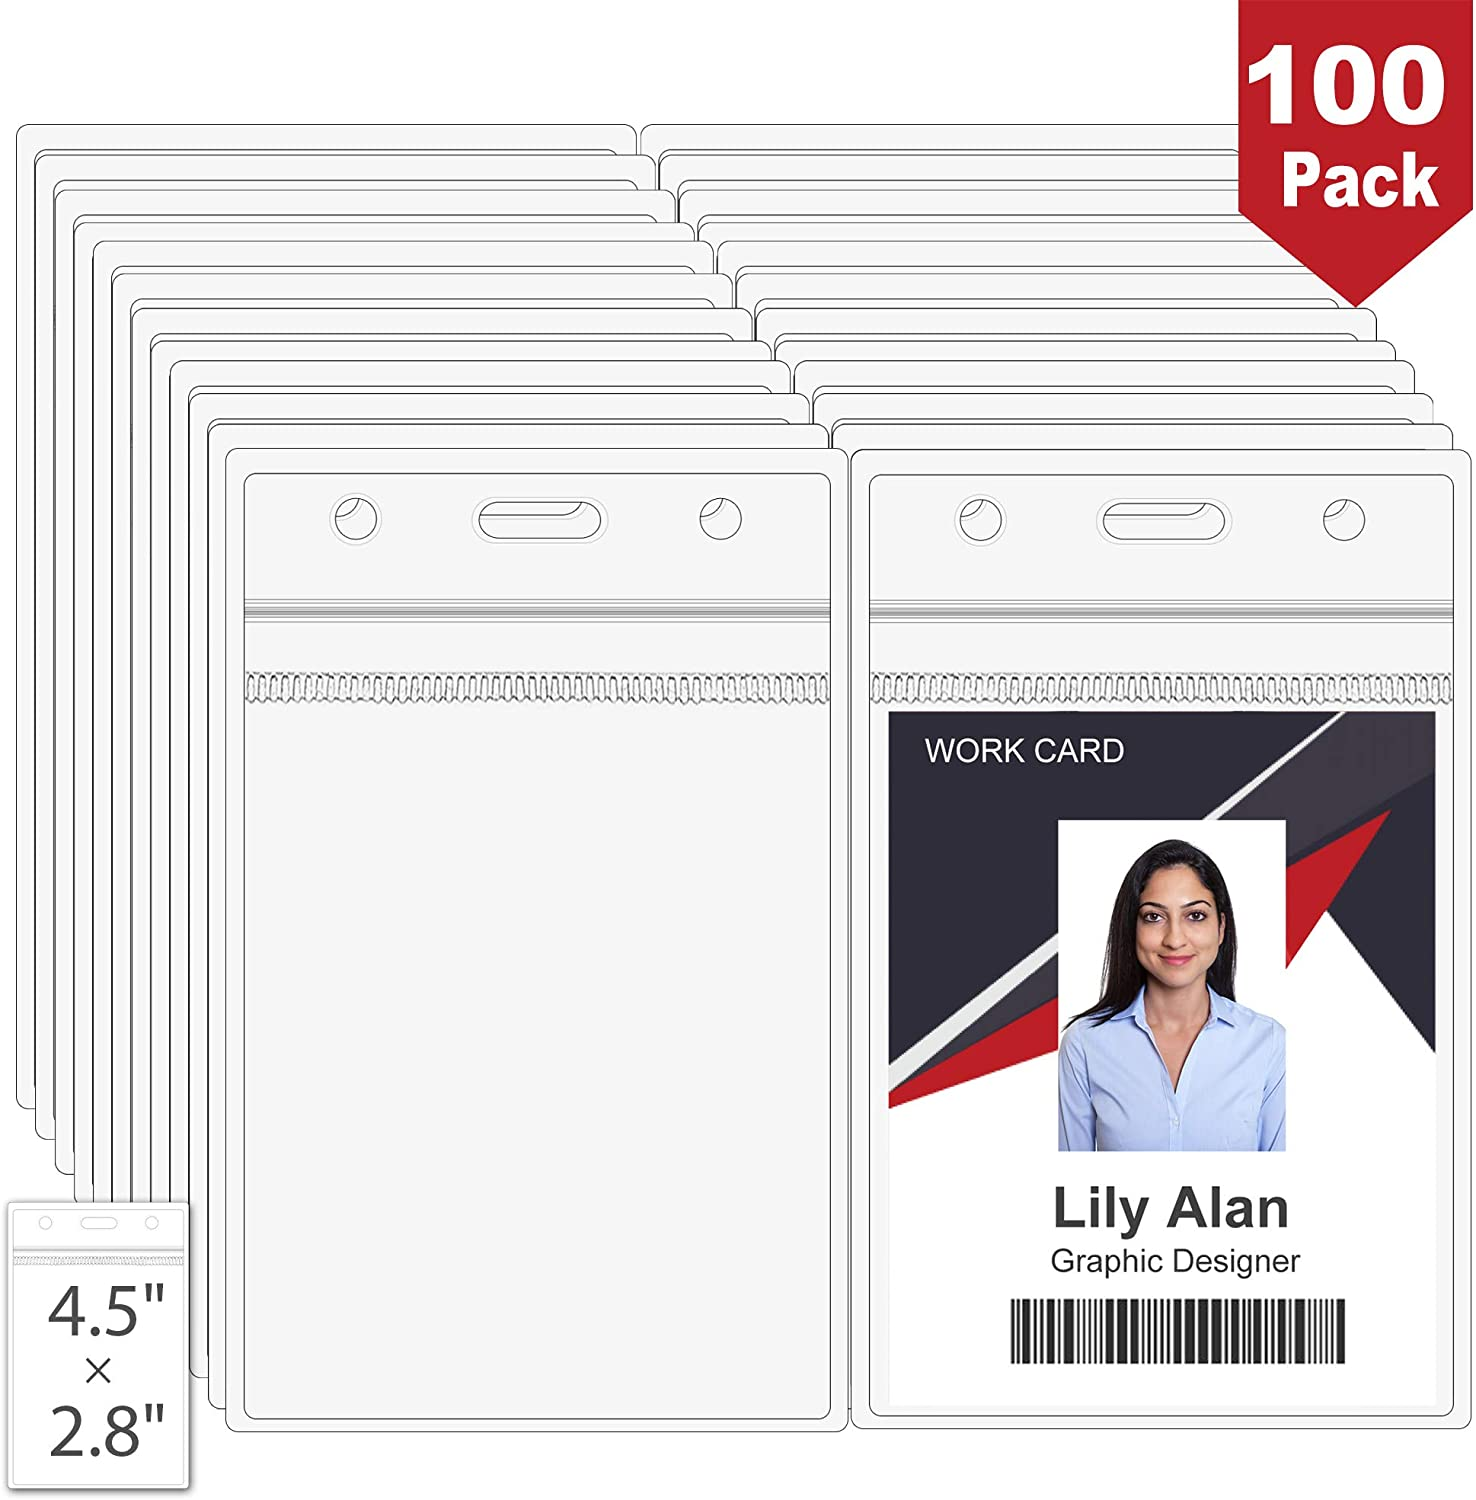 """100PCS Vertical ID Card Name Badge Holders, 4.5""""x2.8"""" Clear Plastic Vinyl PVC Heavy Duty Card Holder with Waterproof Resealable Zip Type Fits RFID/Proximity/Badge Swipe Cards/Credit Card"""